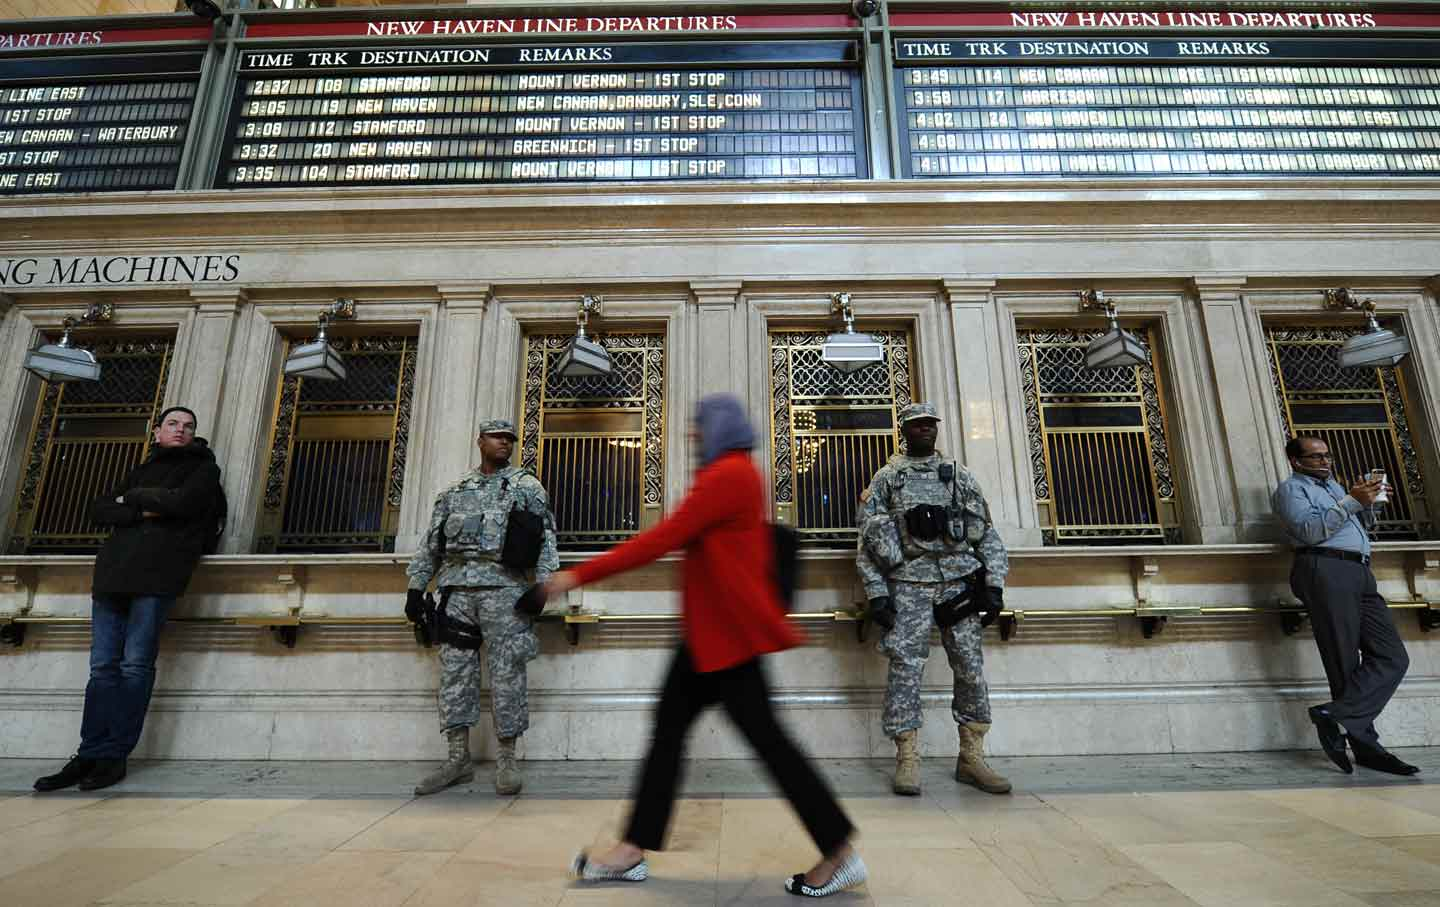 A Woman Walks Past National Guard Solrs In Grand Central Terminal New York City On March 22 2017 The Day After Belgium Terror S